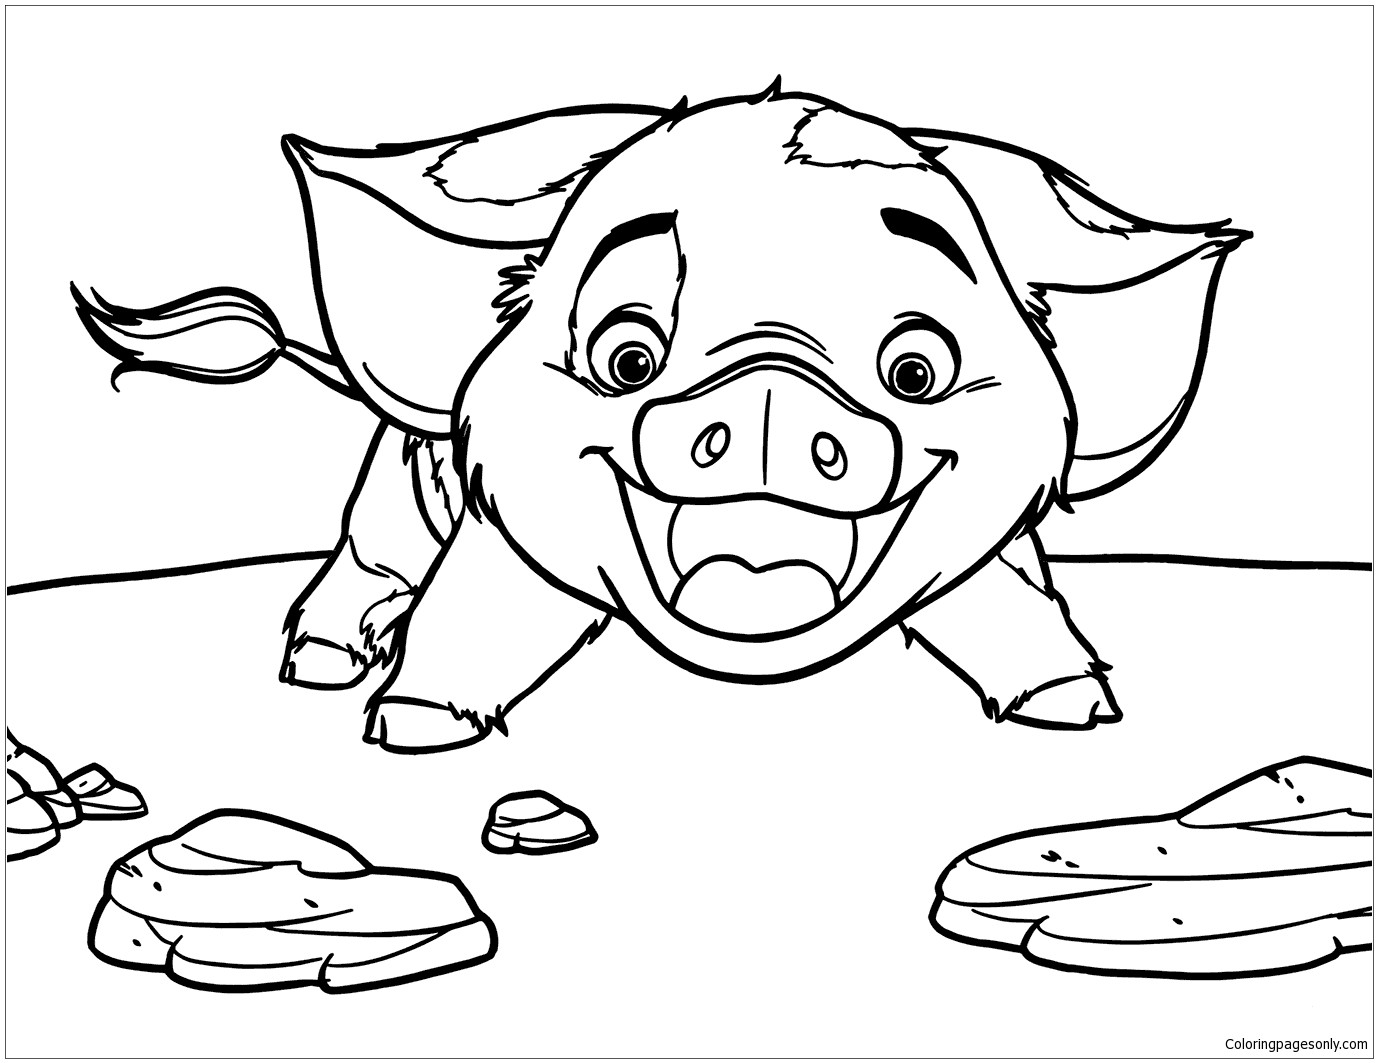 Moana Pua Coloring Pages  Pua Pig From Moana 5 Coloring Page Free Coloring Pages